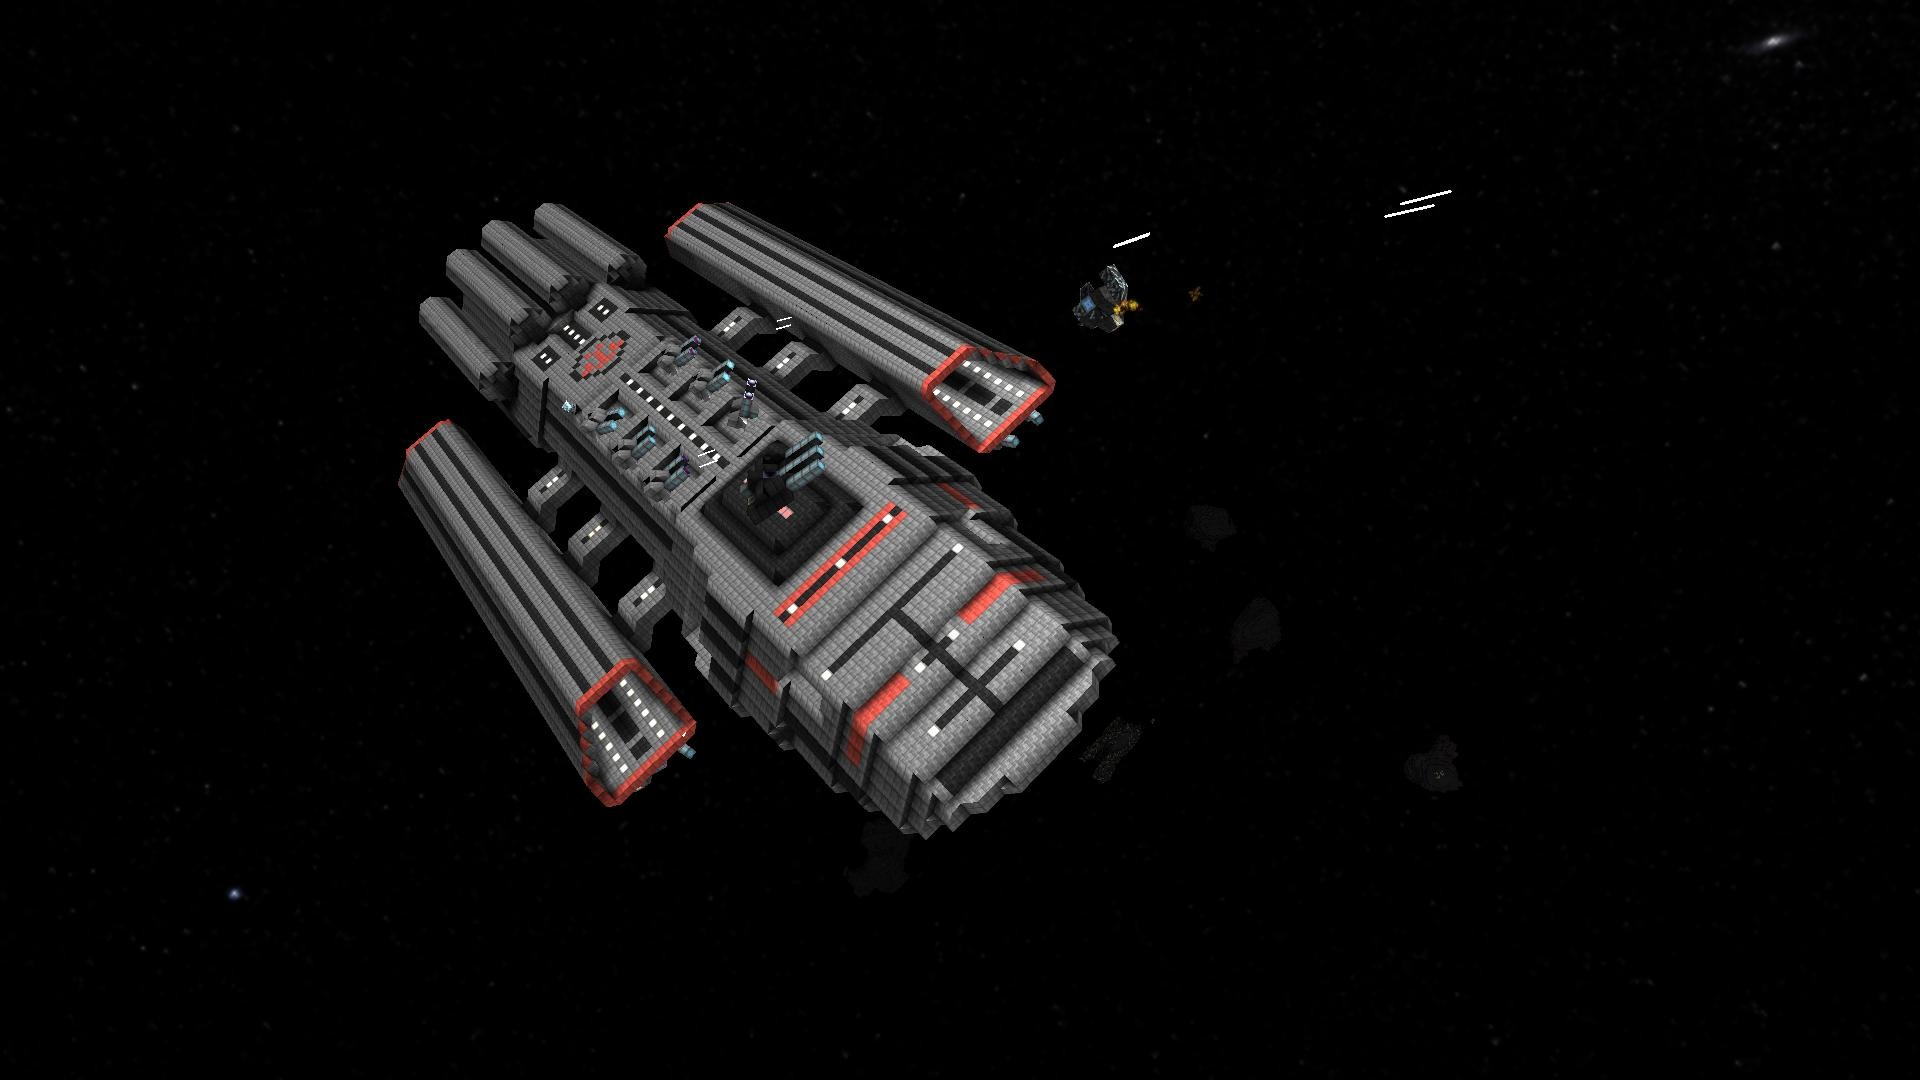 First iteration of my (slightly modified) Mercury class BattleStar with a  pair of Mk II Colonial Vipers.